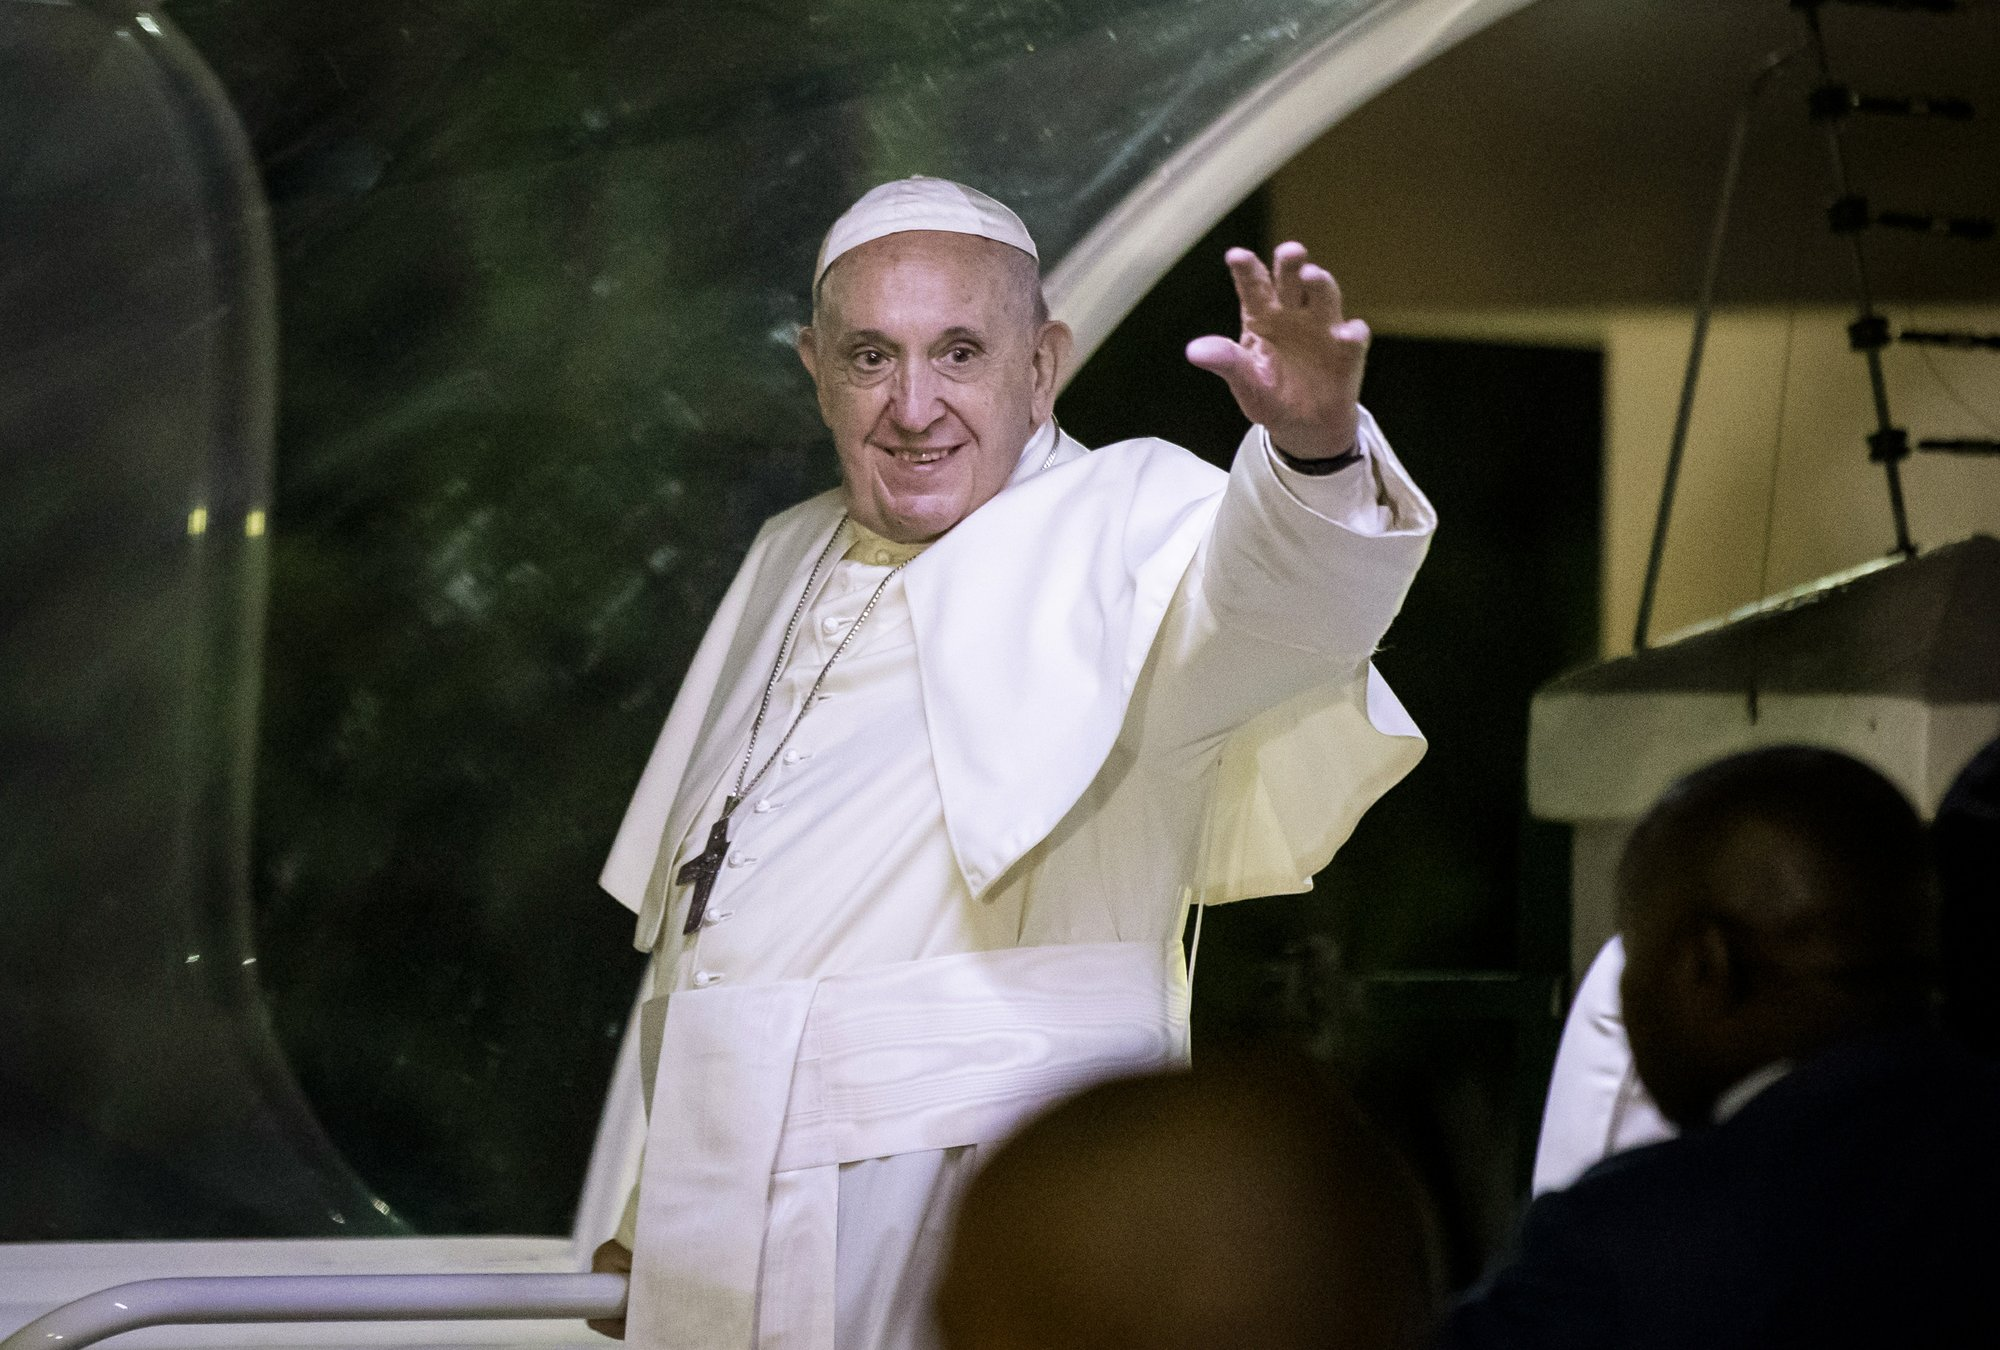 Pope makes strategic visit to Mozambique after peace deal